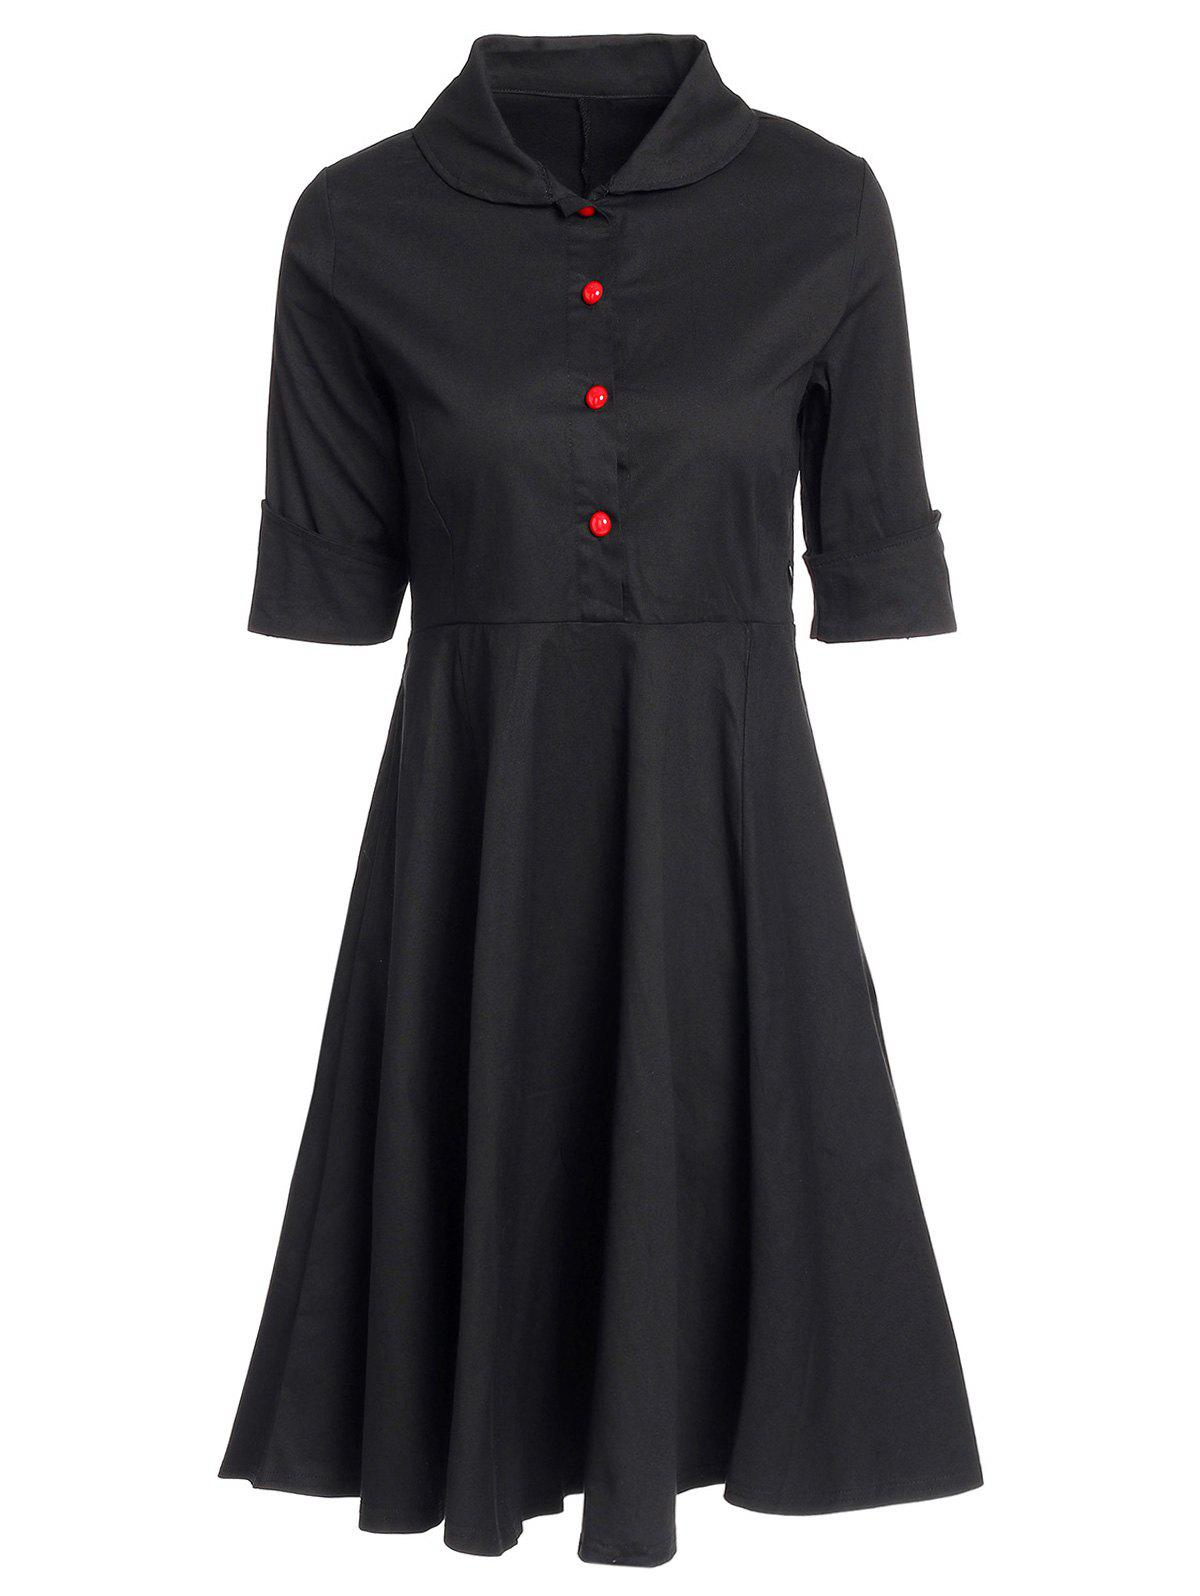 Vintage Buttoned Turn-Down Collar Short Sleeve Ball Dress For Women - BLACK M